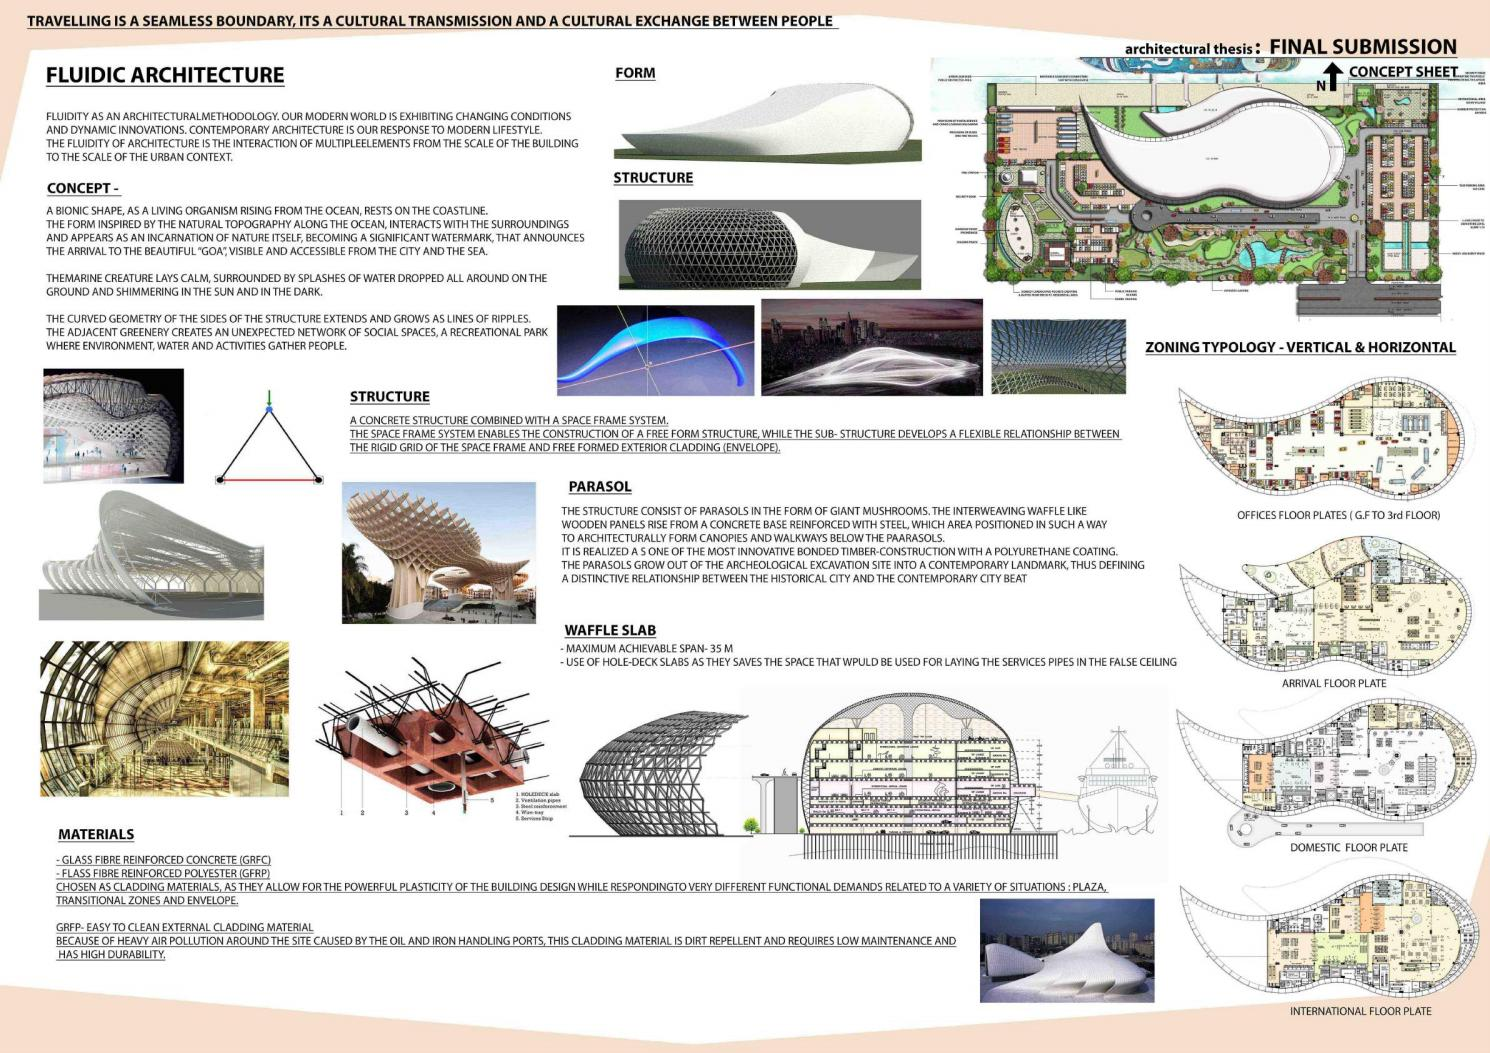 Architectural portfolio thesis international cruise for Photo templates from stopdesign image info